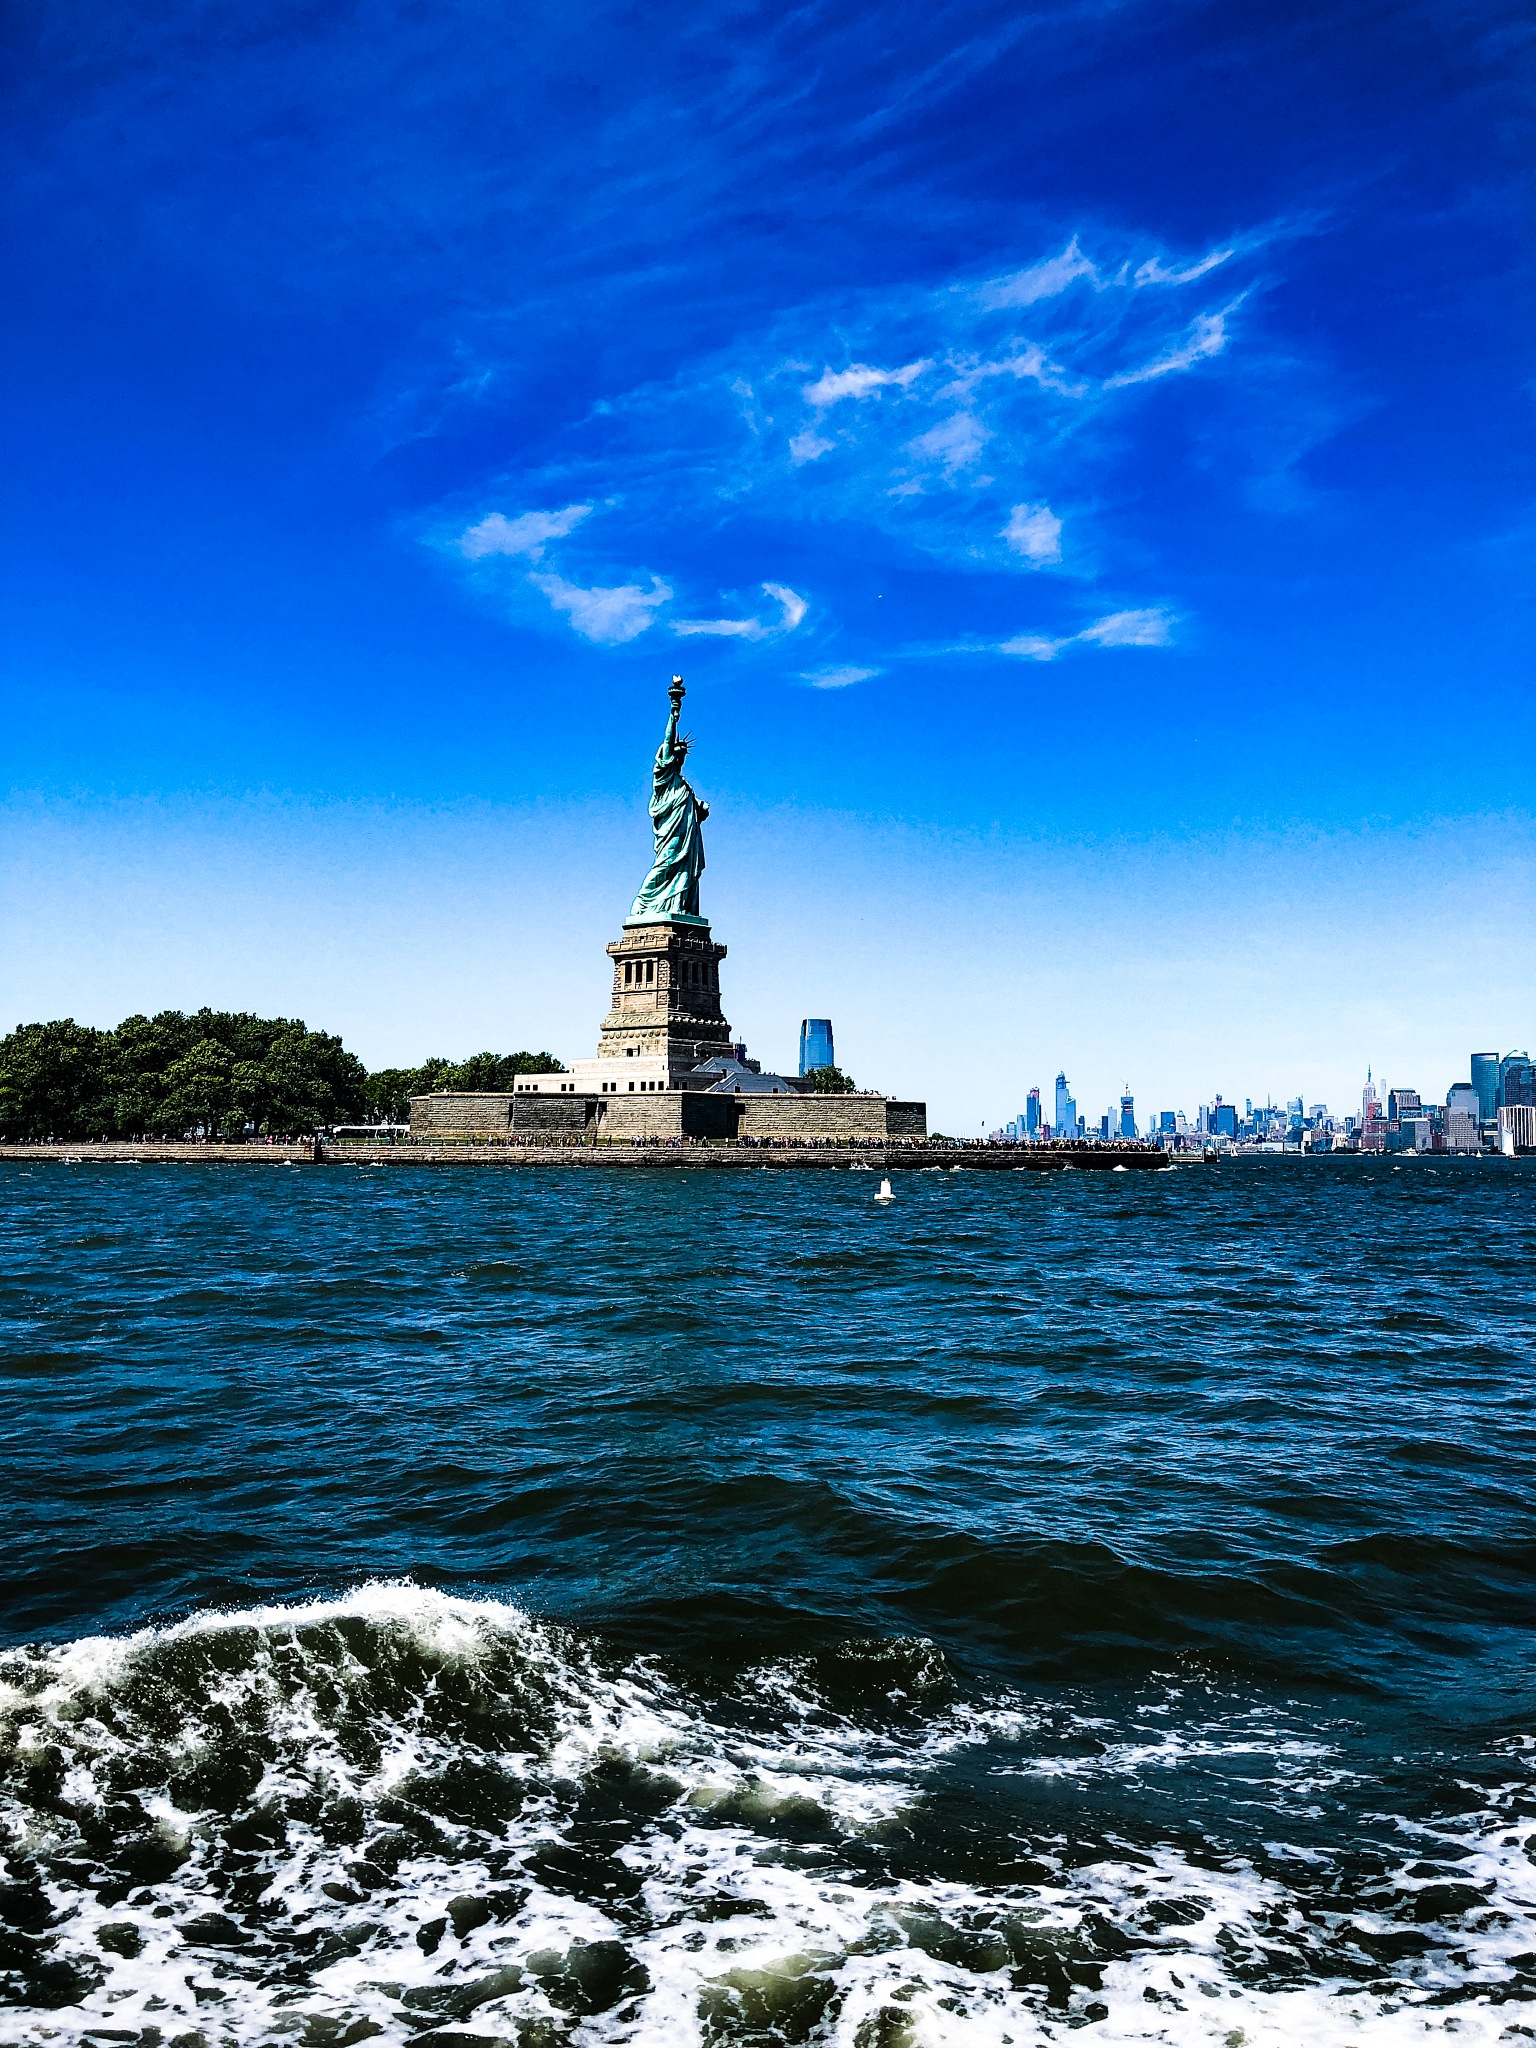 The Statue of Liberty by expedition.lenses